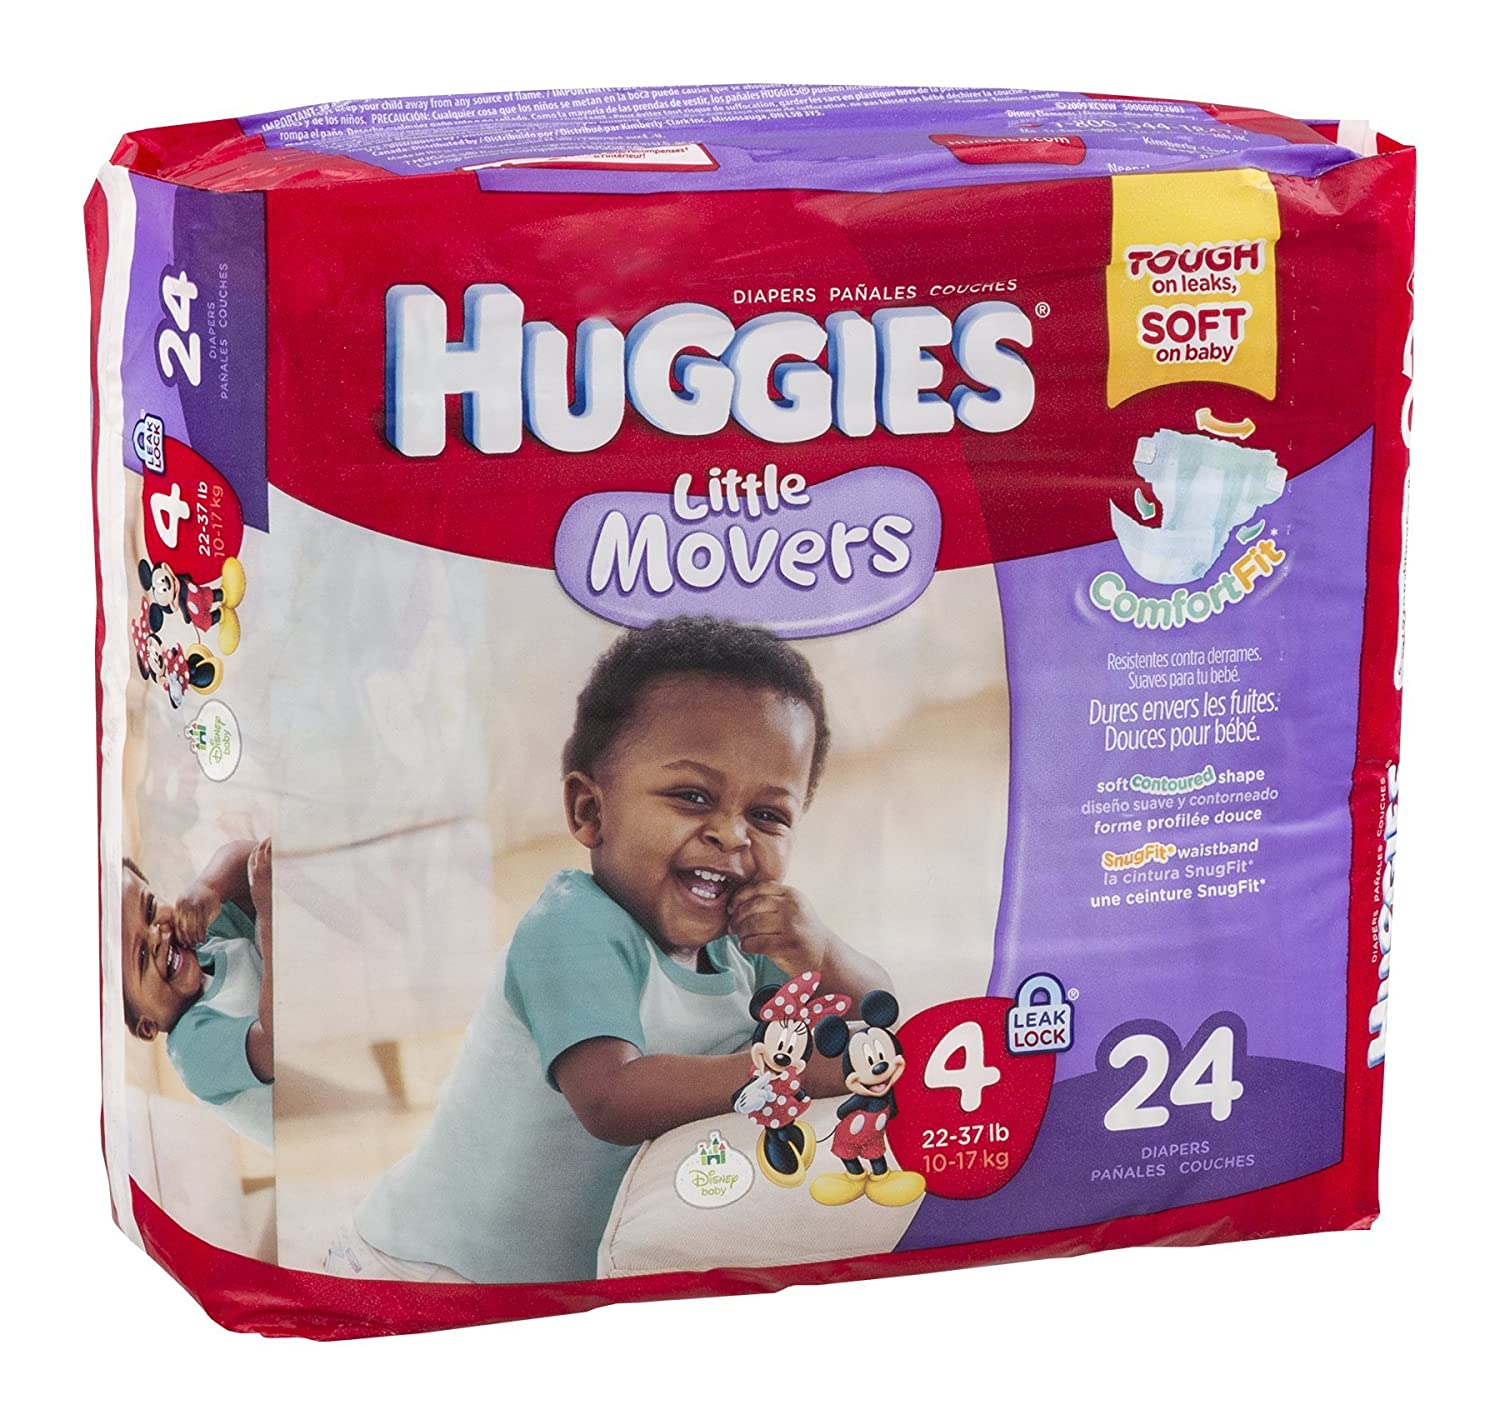 Huggies Diapers Little Movers Disney Size 4 (22-37 lb) 24 CT (Pack of 16) diapers